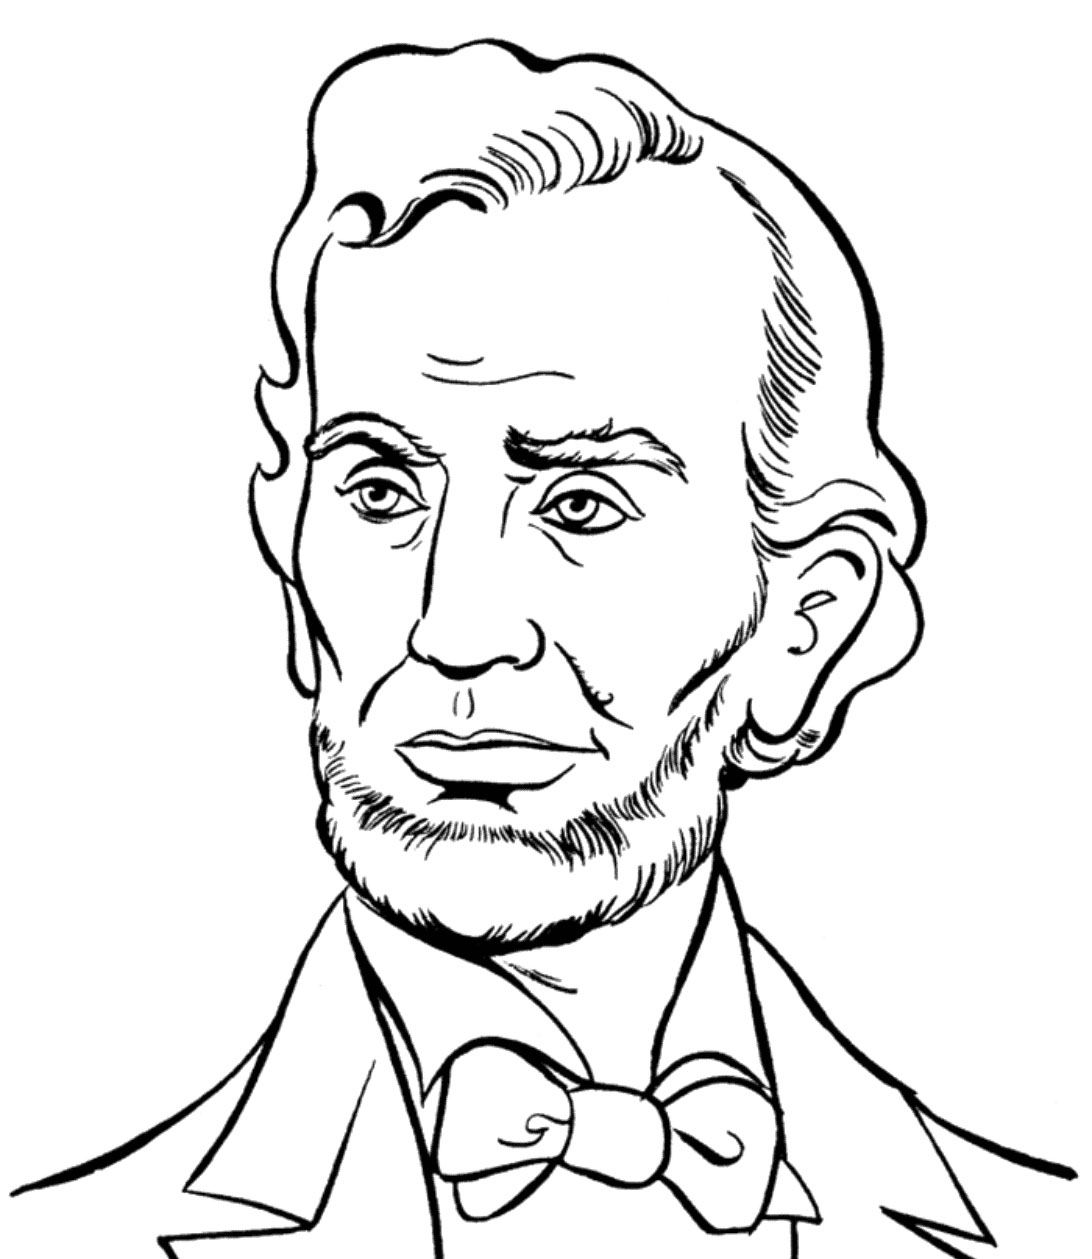 The best free president coloring page images download from 247 free